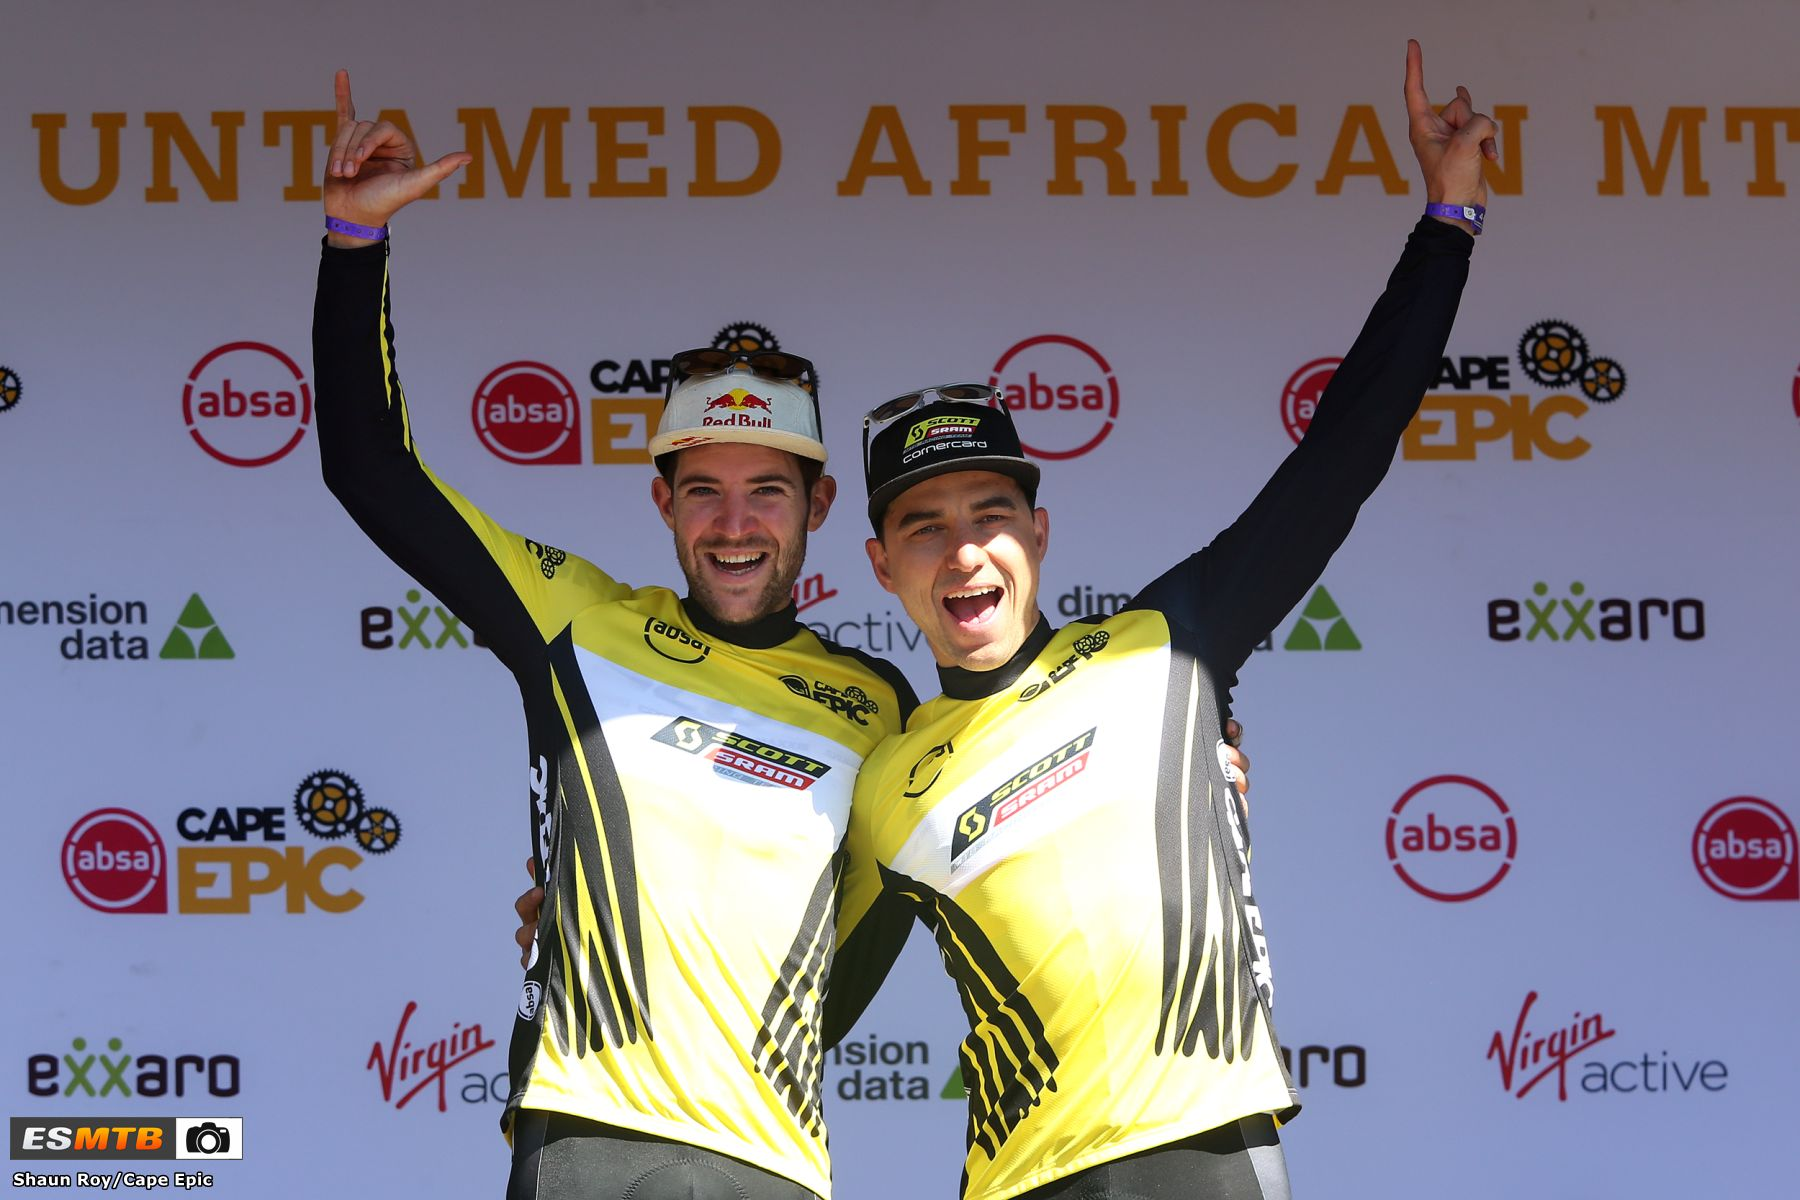 Absa Cape Epic 2019 - Etapa 6